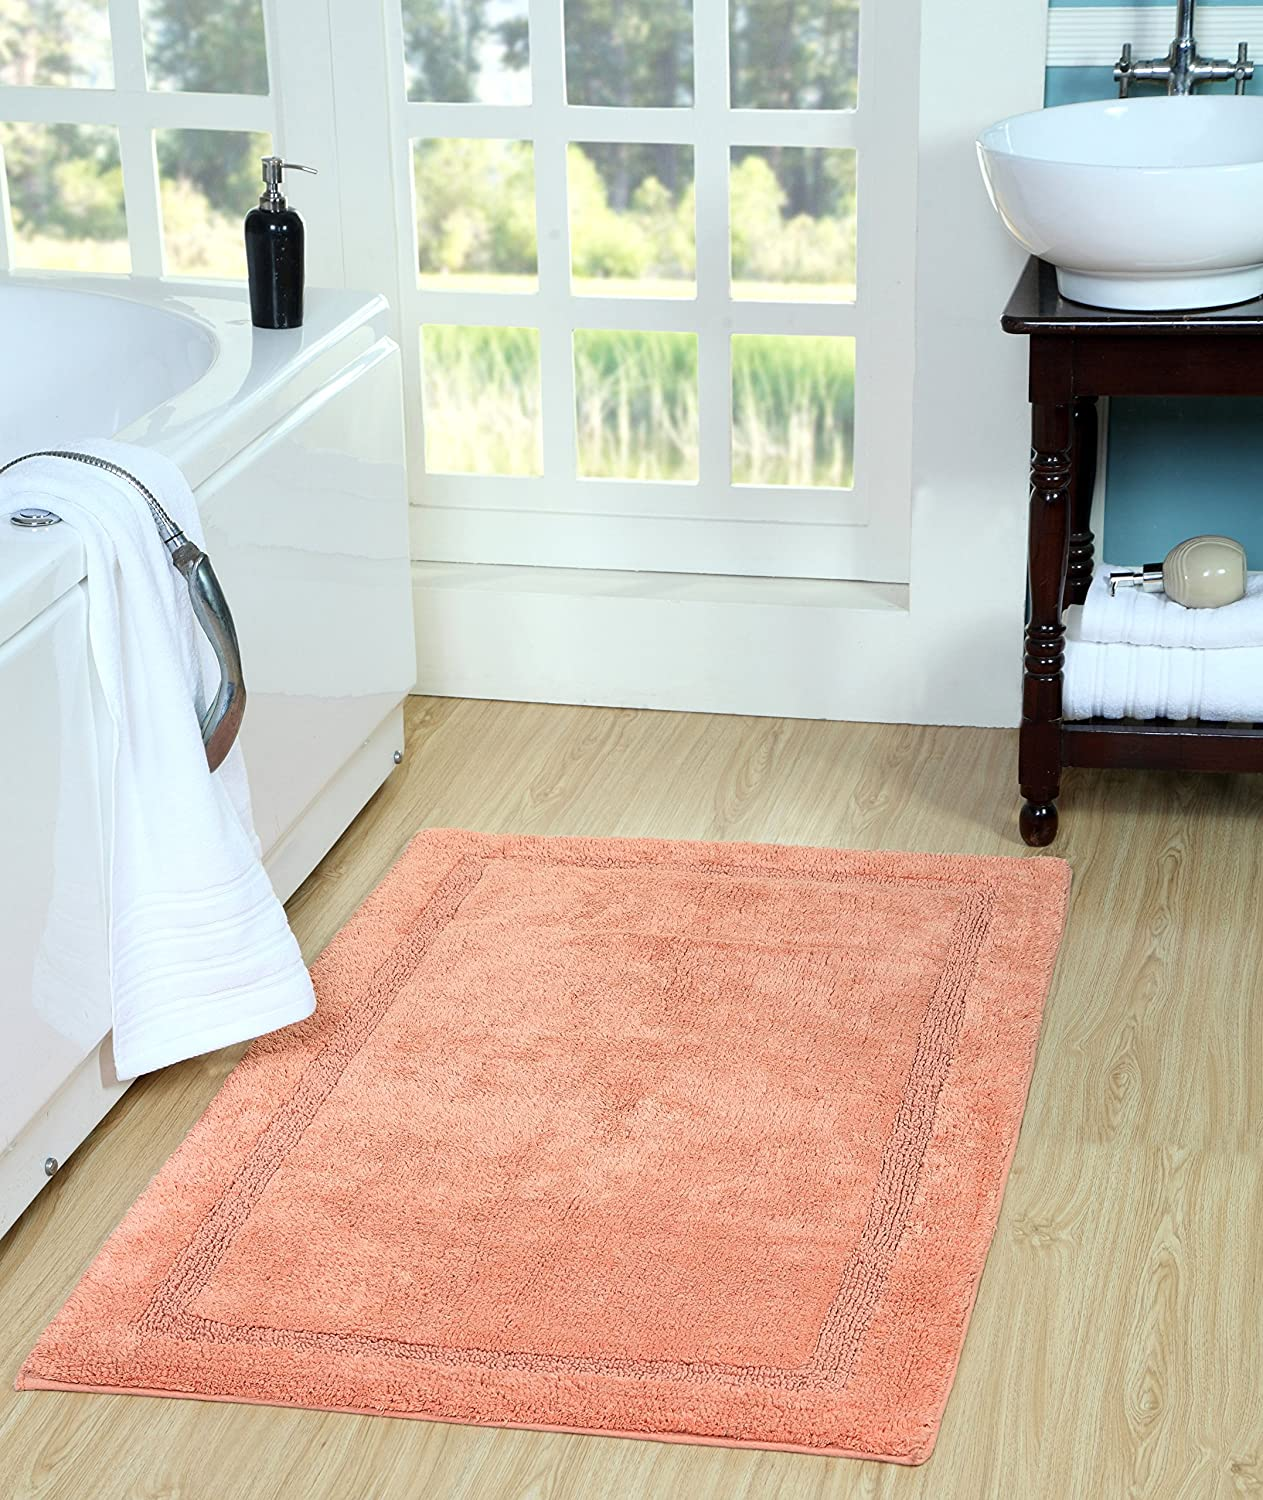 Saffron All stores are sold Fabs 100% quality warranty Regency Bath Rug 30